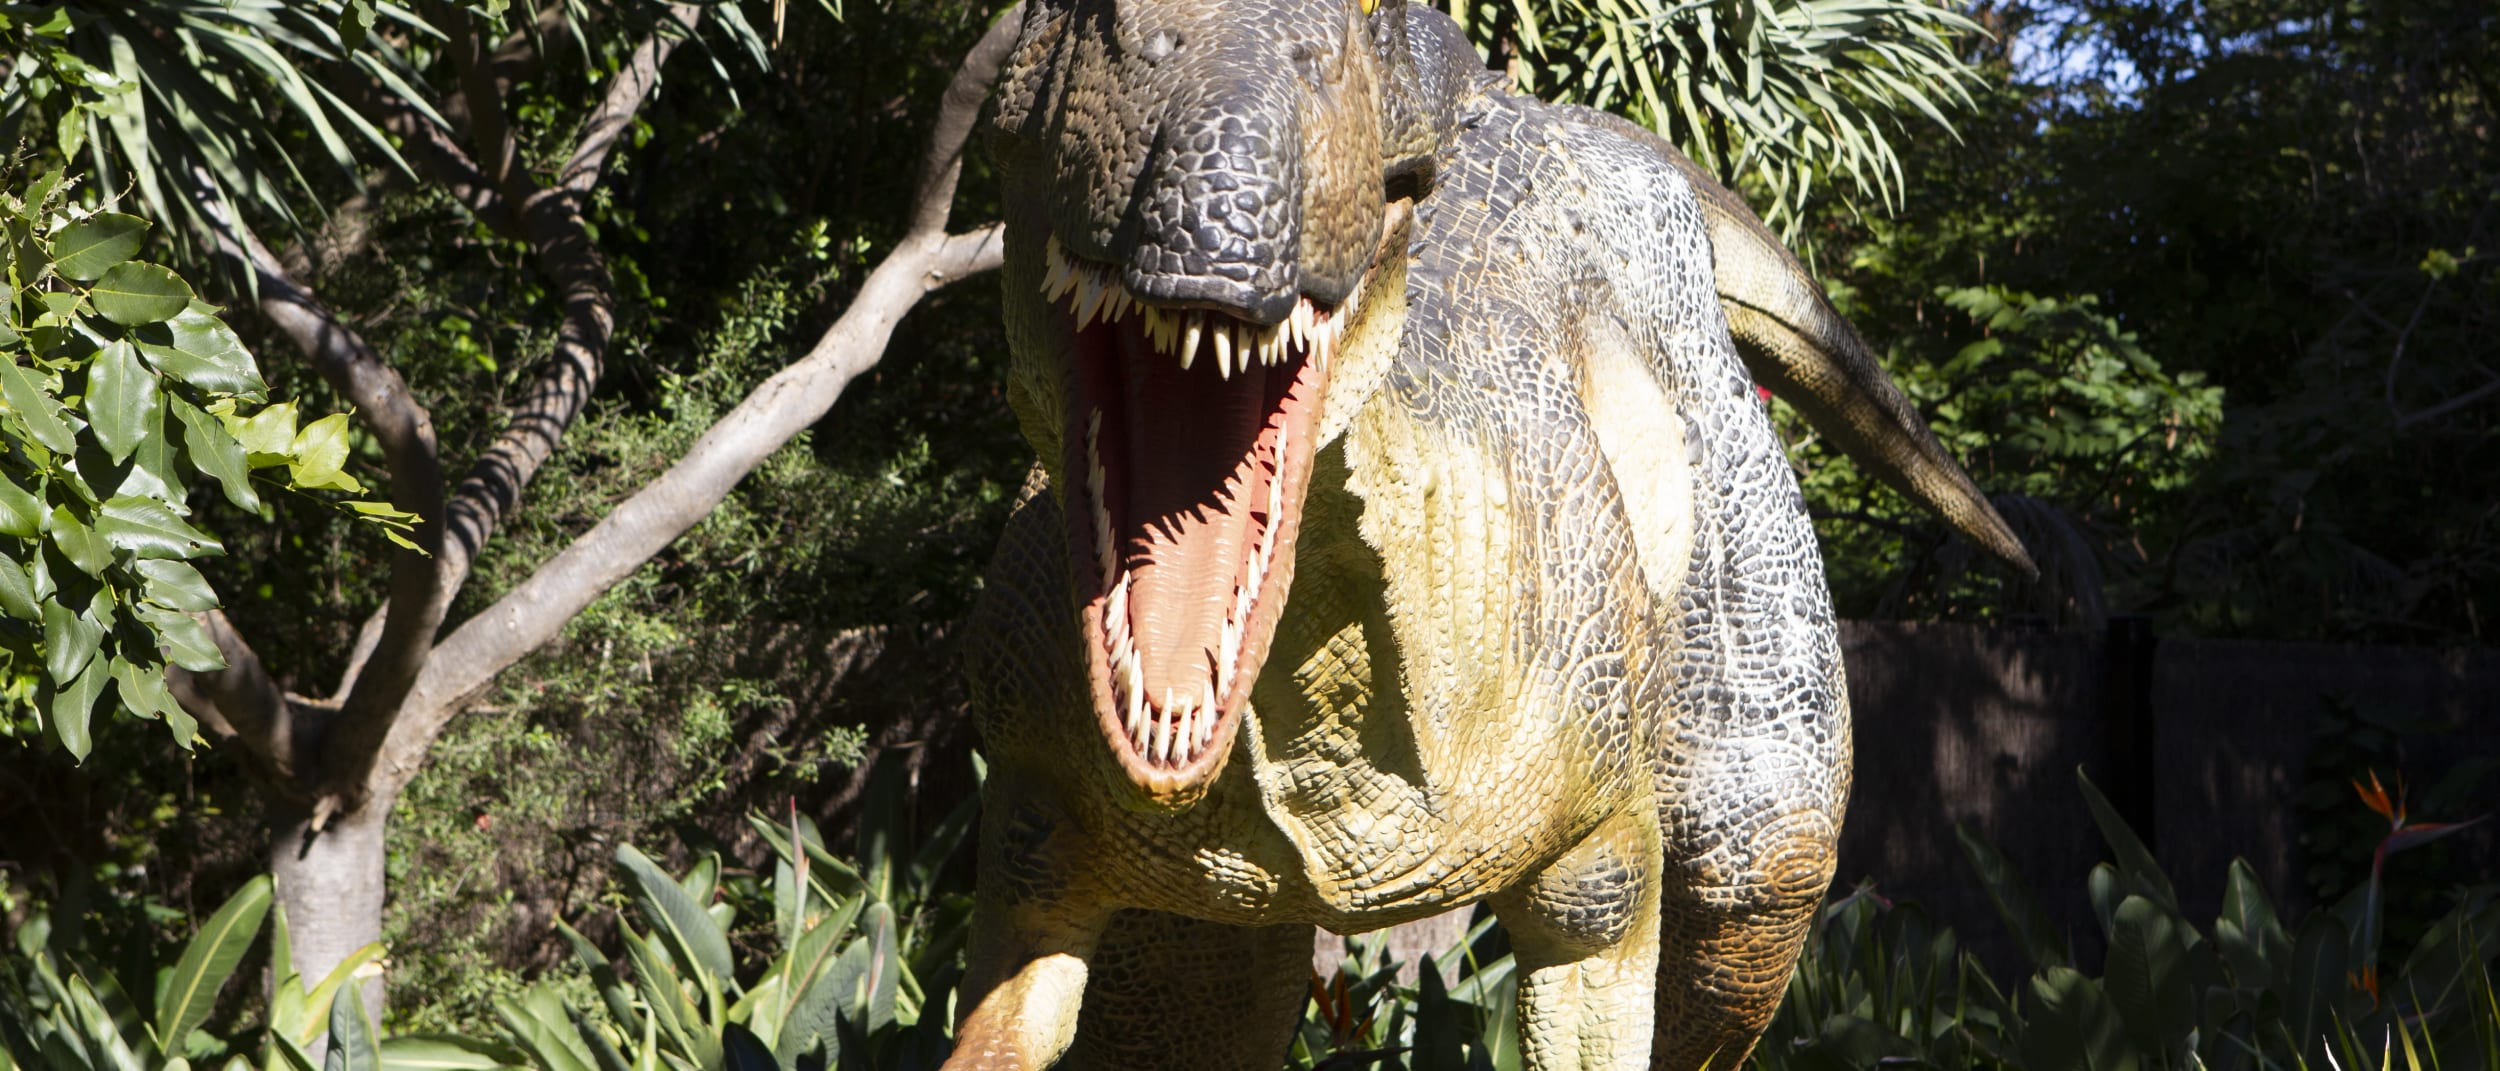 Dine with Dinosaurs